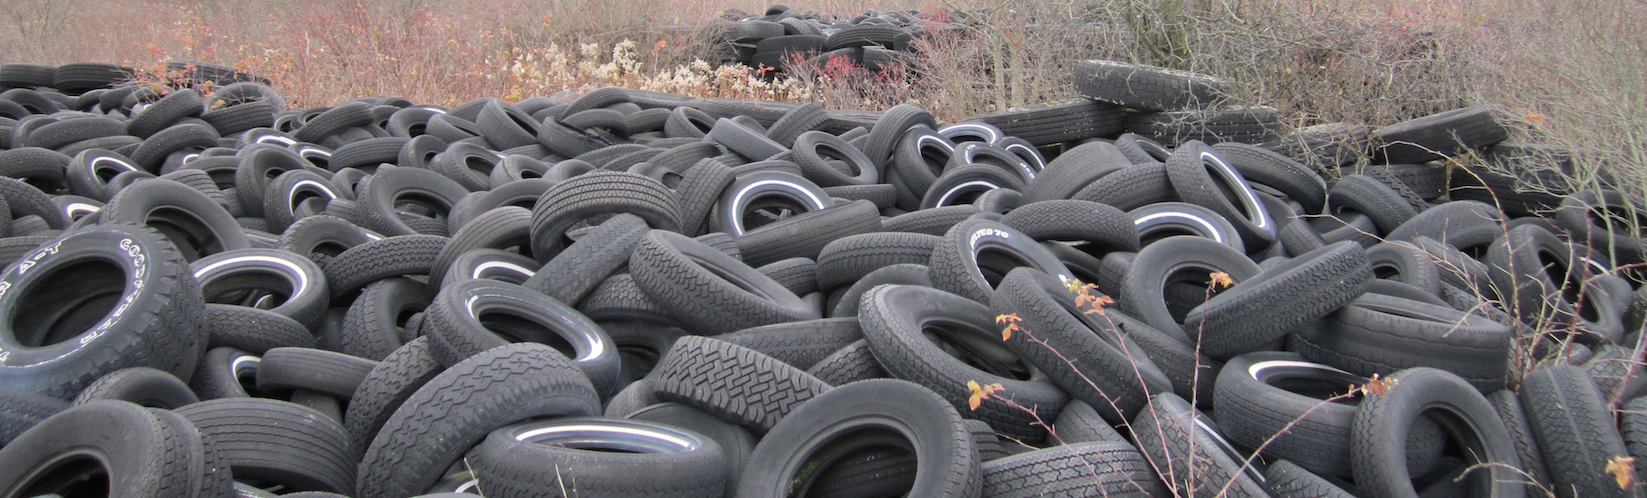 Ontario's Disappearing Used Tire Piles